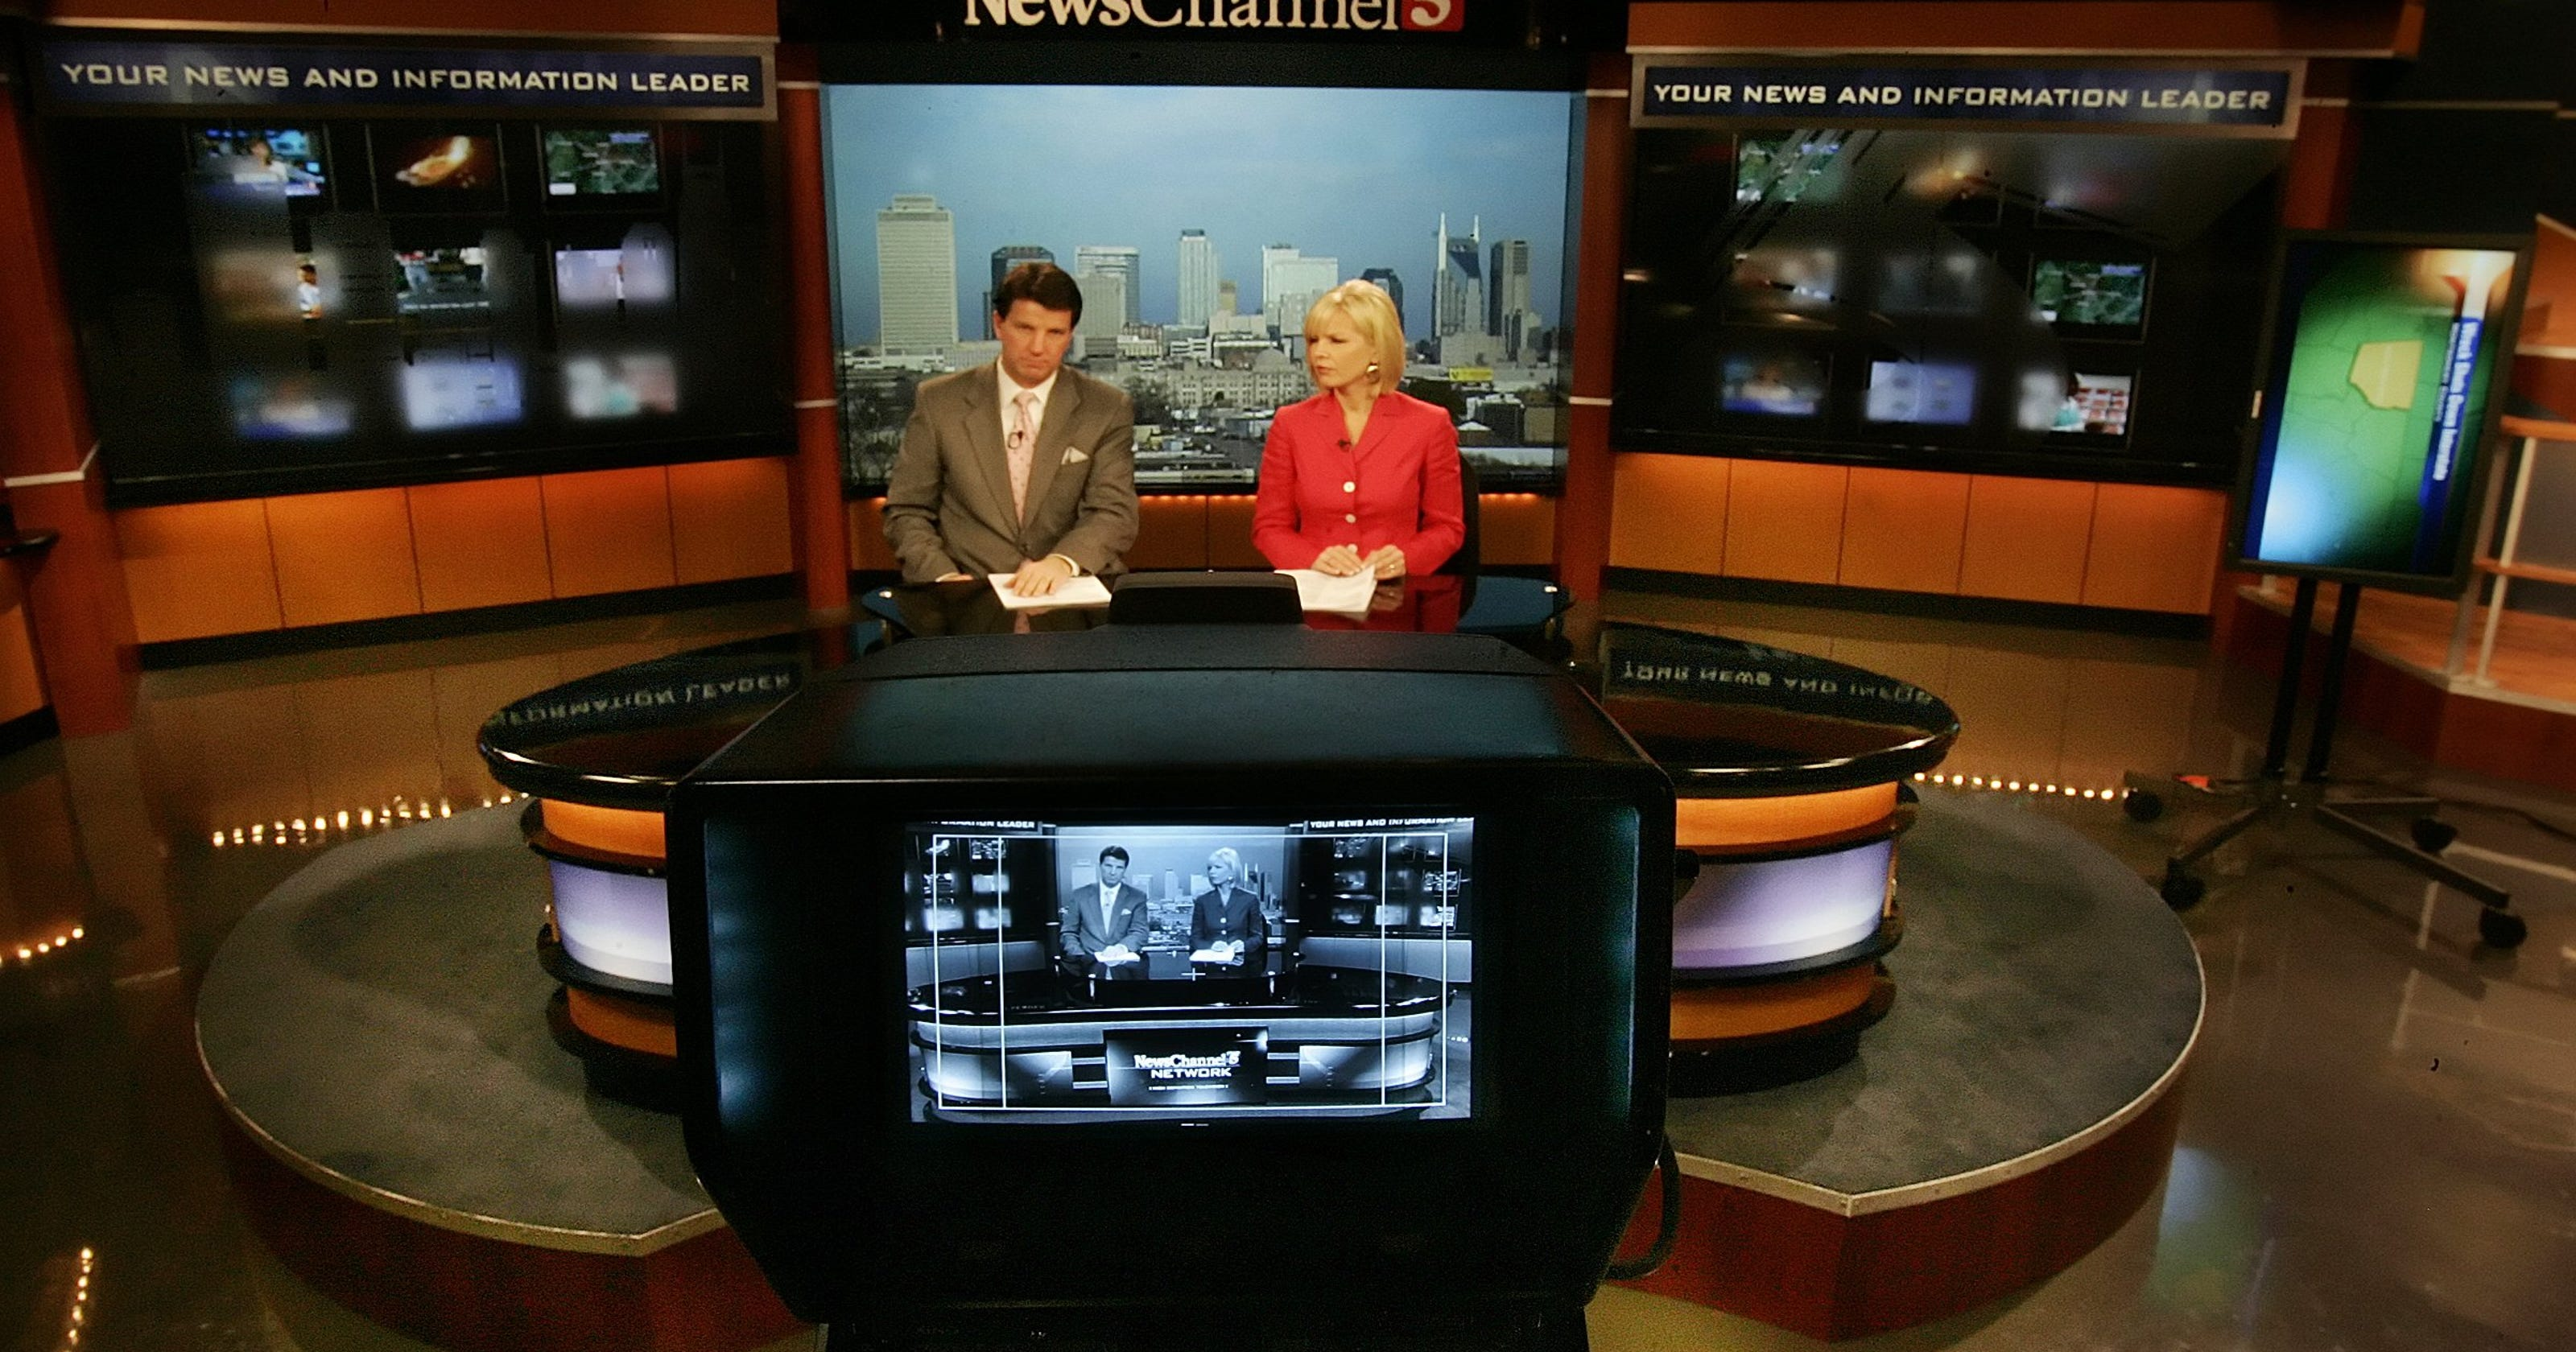 Steve Hayslip: What happened to NewsChannel 5 morning show anchor